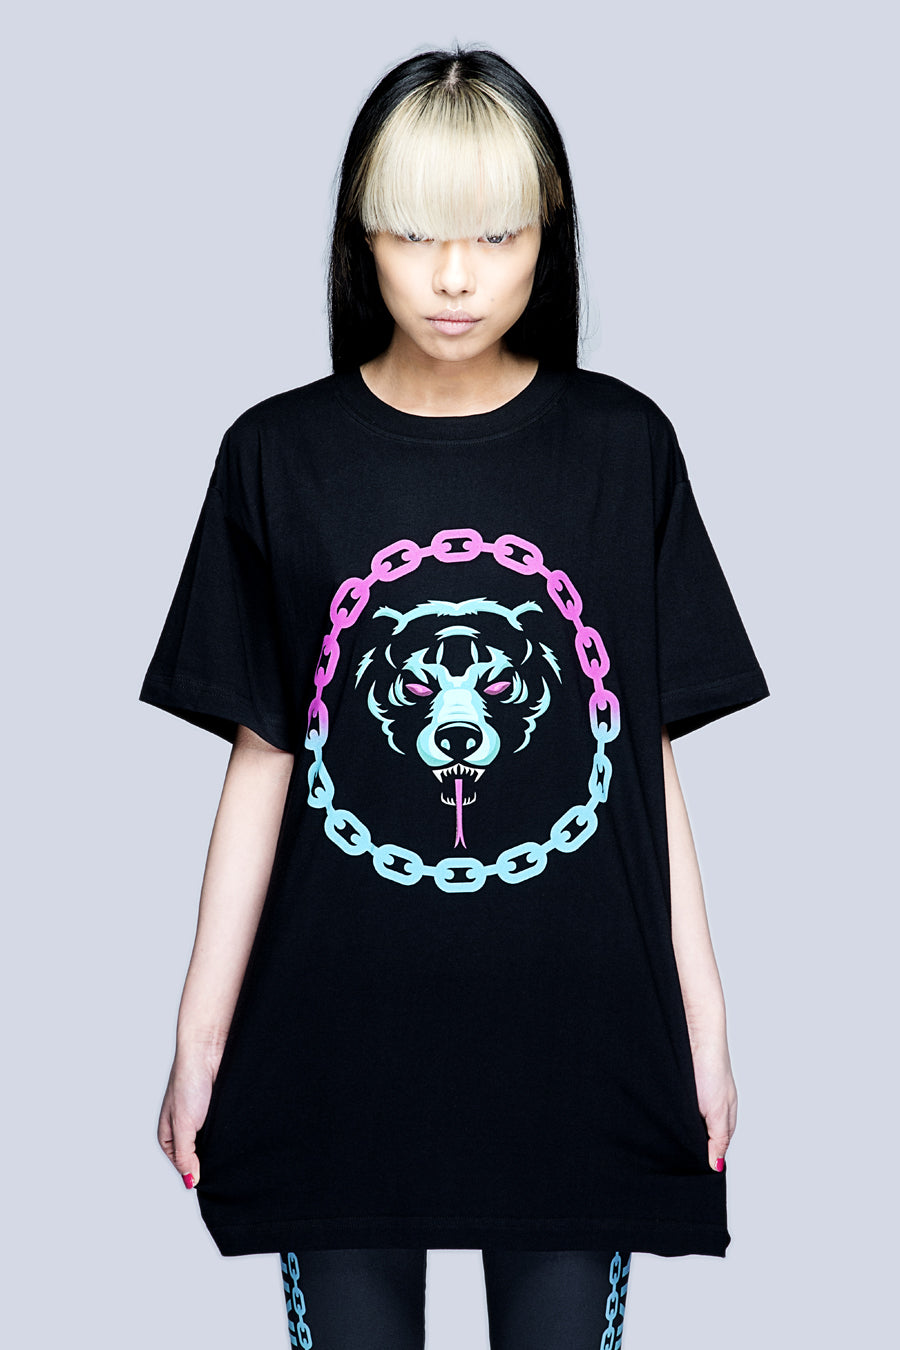 Mishka 2.0 Death Adder Chain (B) -0